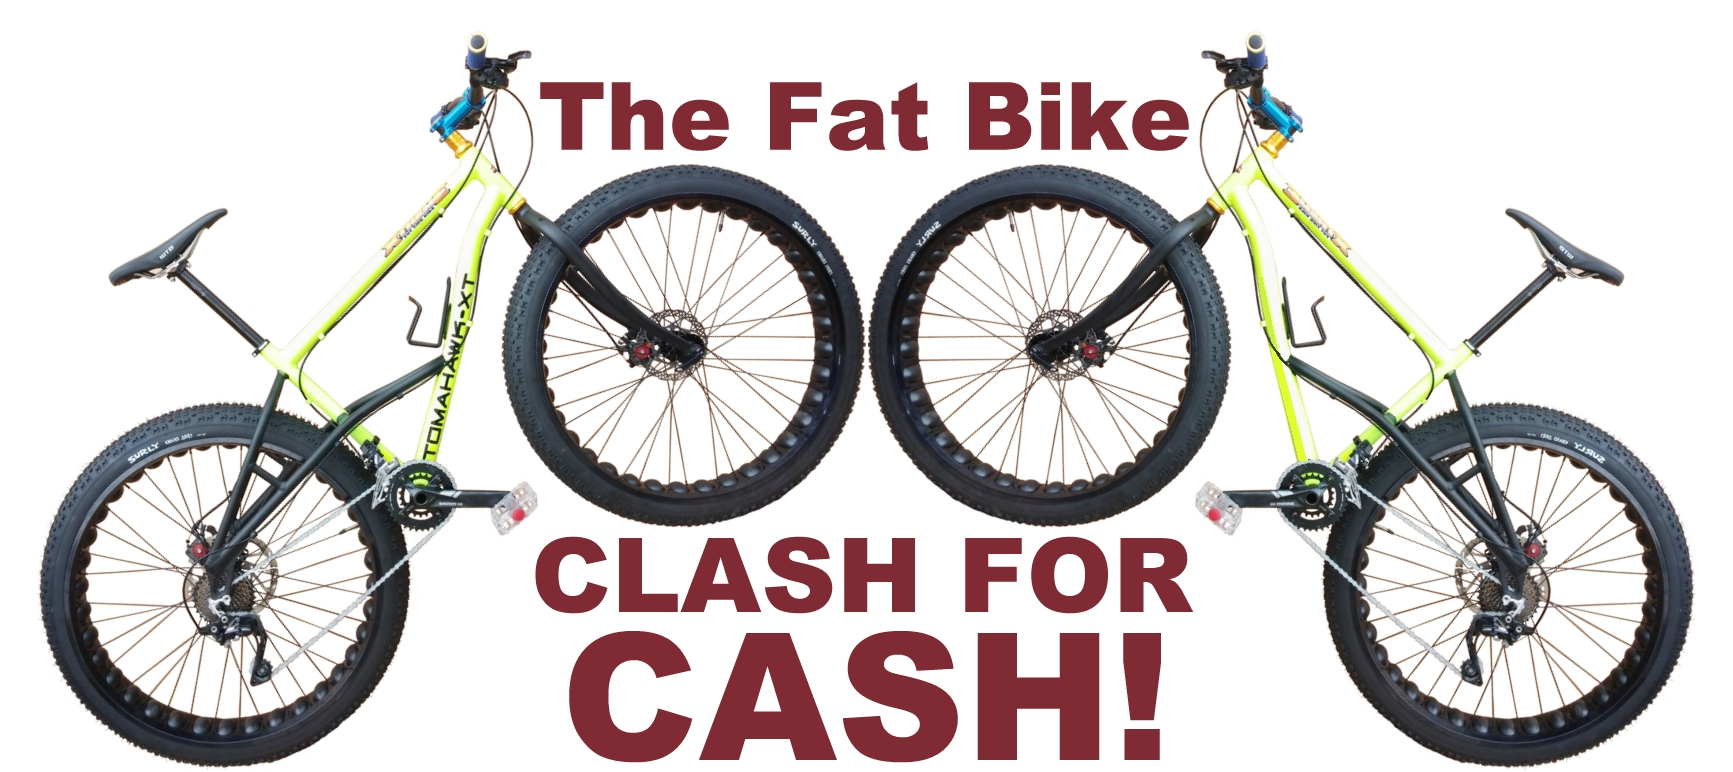 CLASH FOR CASH - Extreme Bike Race at Ocean Deck Daytona Beach